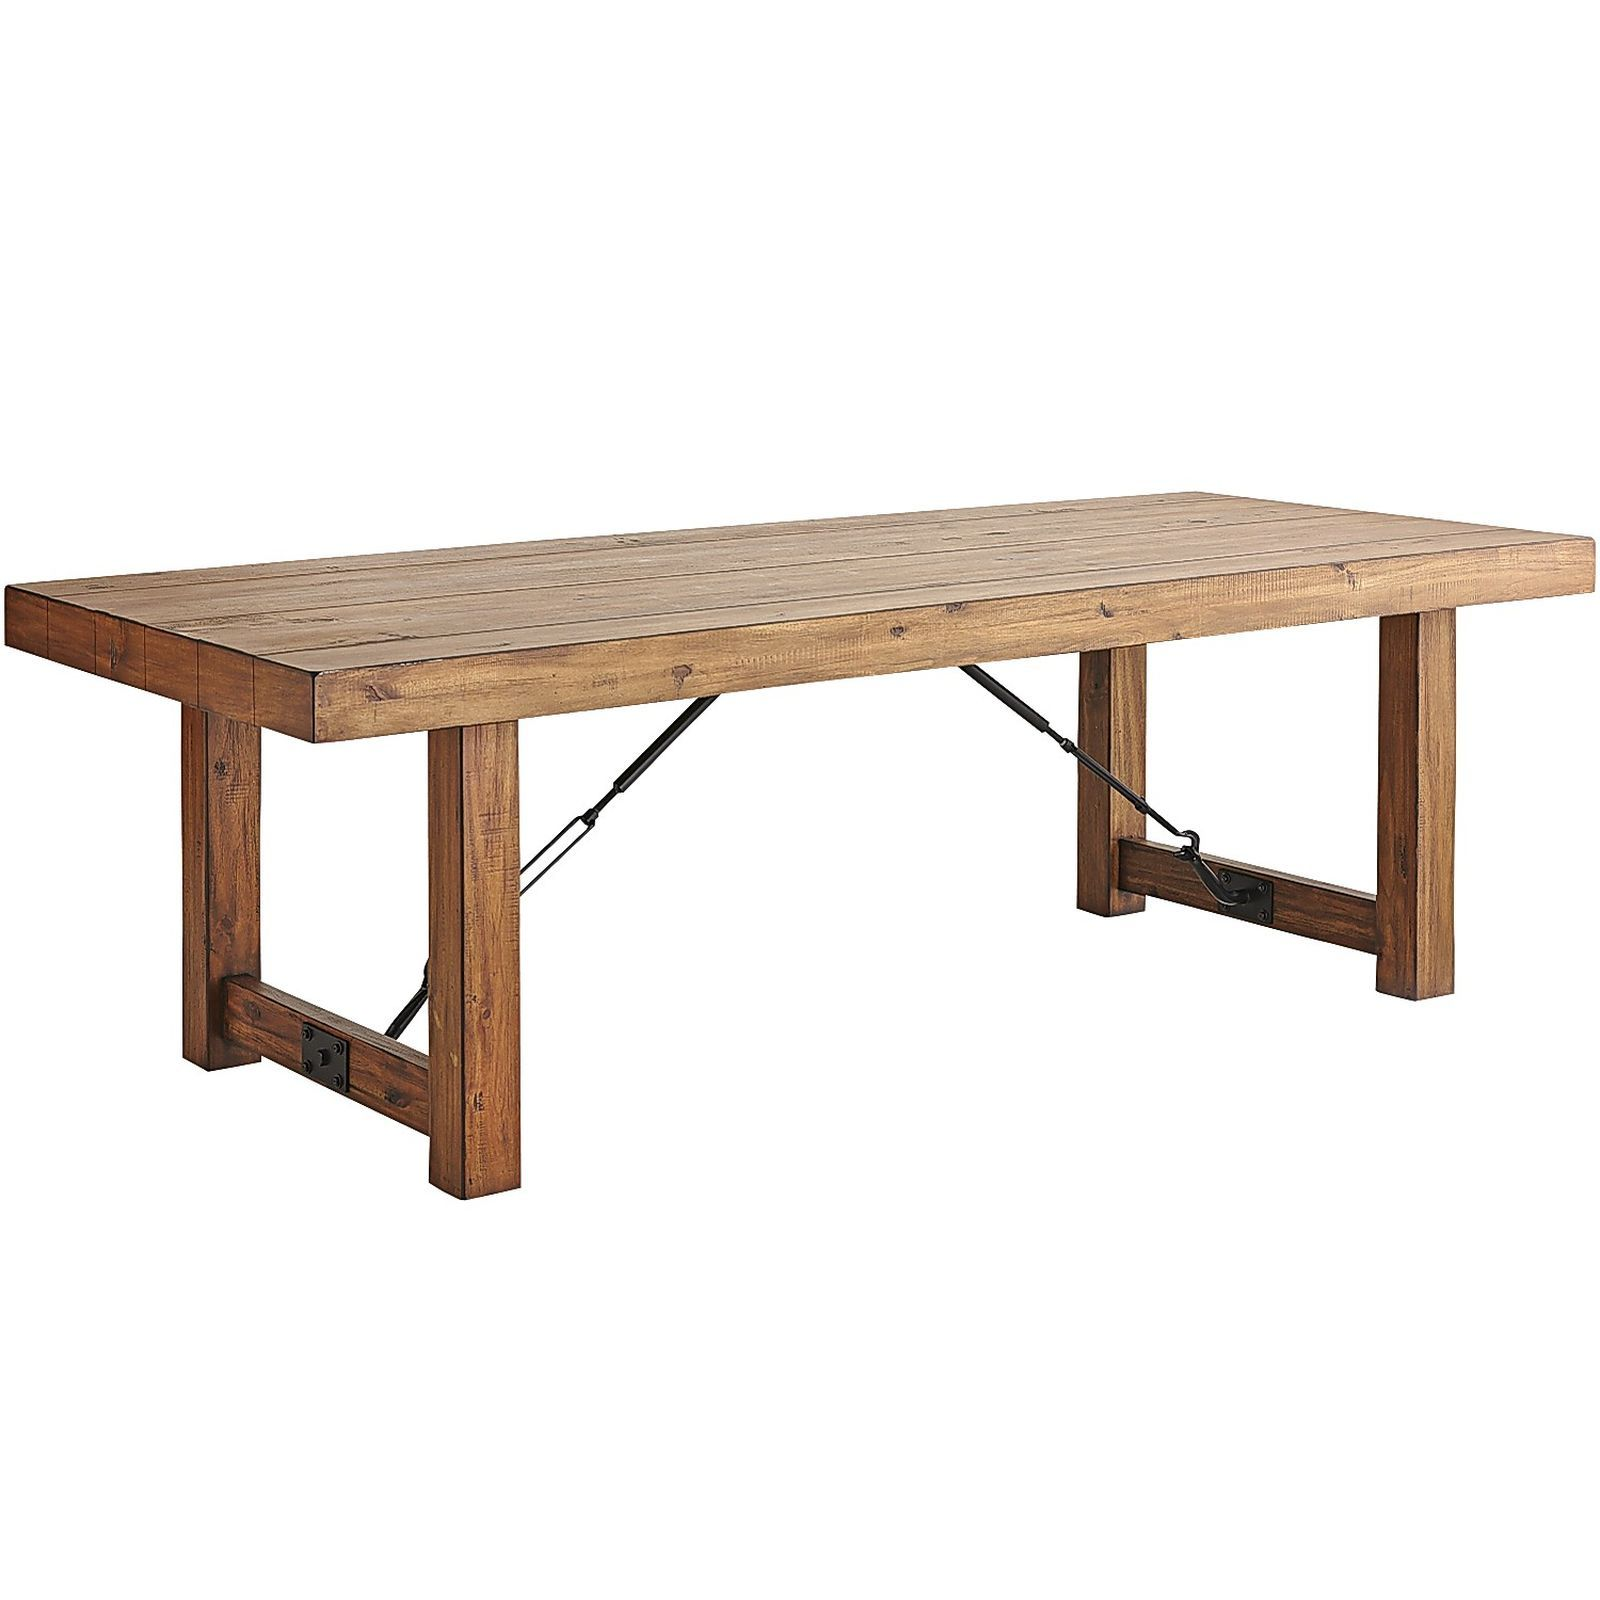 Family Style Meets High In Our Eastwood Dining Table This Chunky Farmhouse